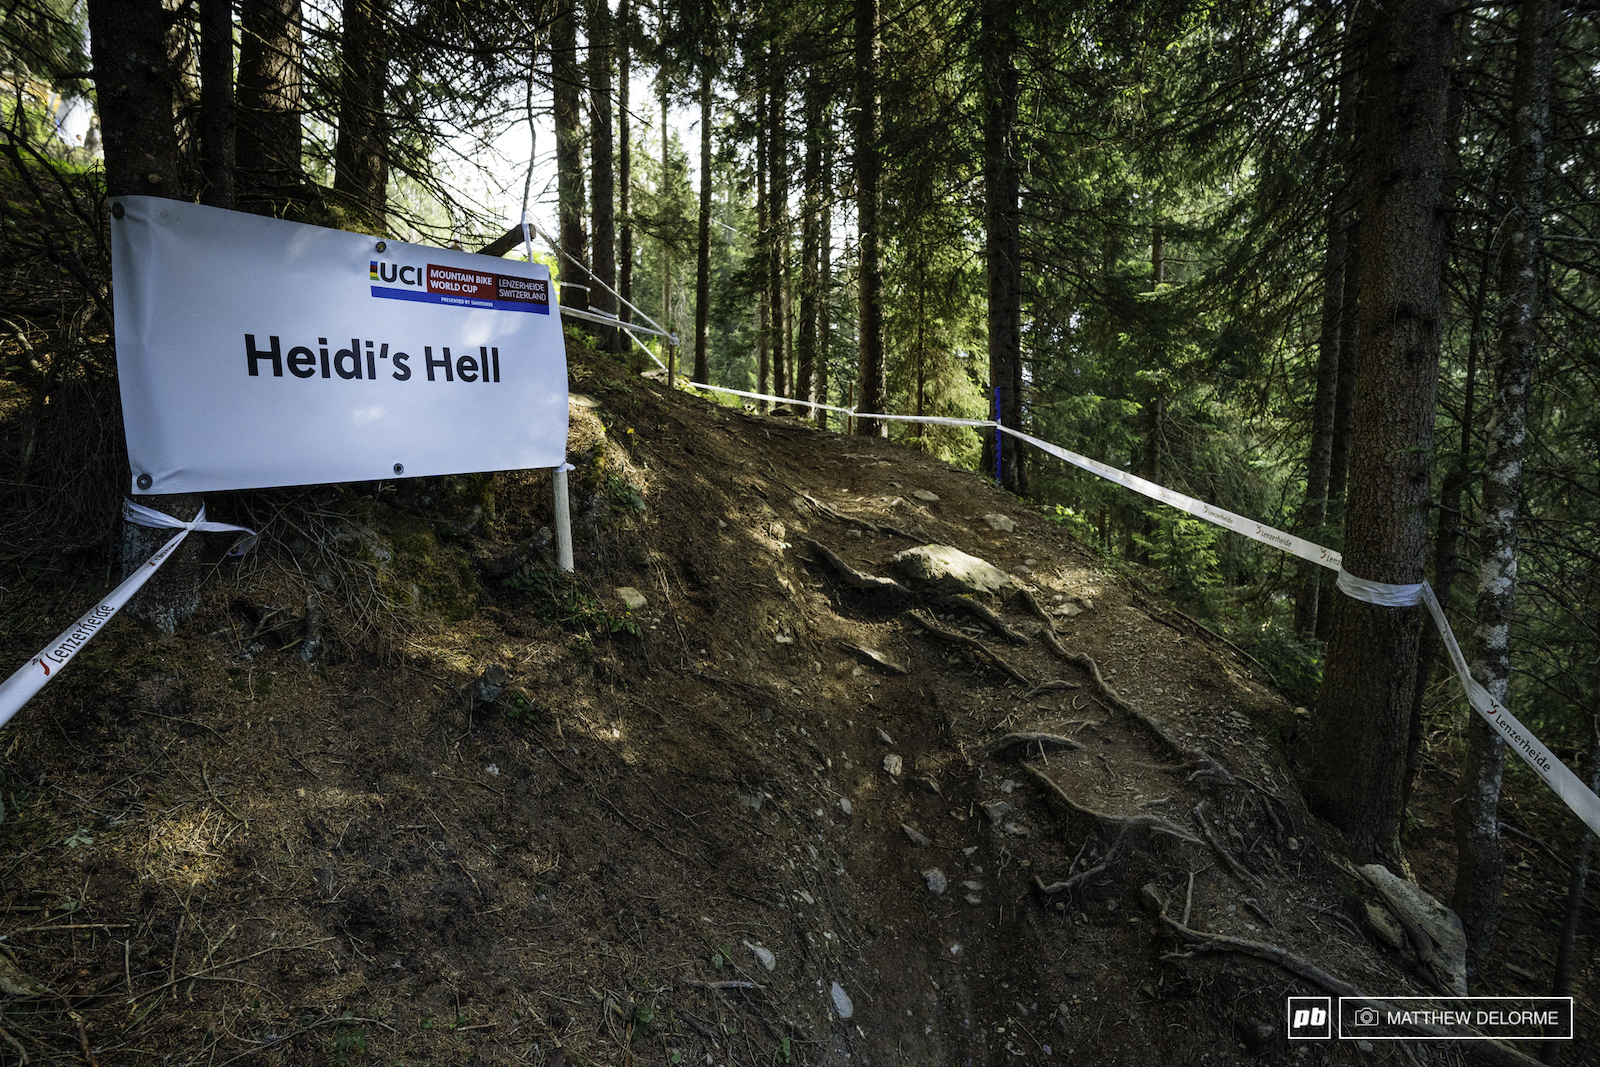 Across the high speed roots and straight to Hell. Heidi s Hell that is. Now with new features